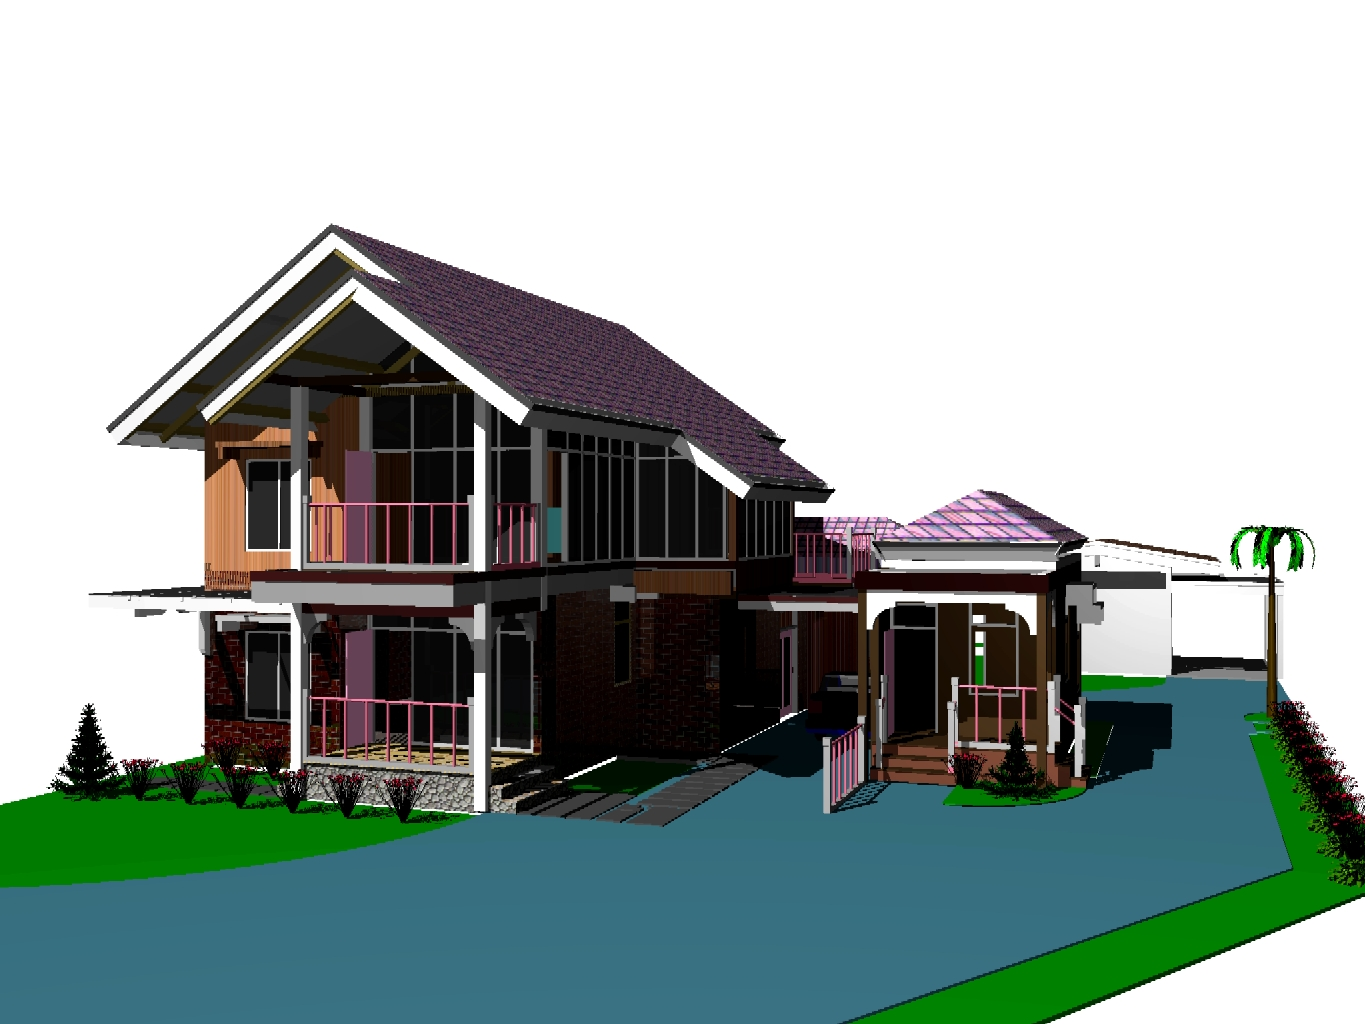 Two storey residential house design 28 images design for Residential house design